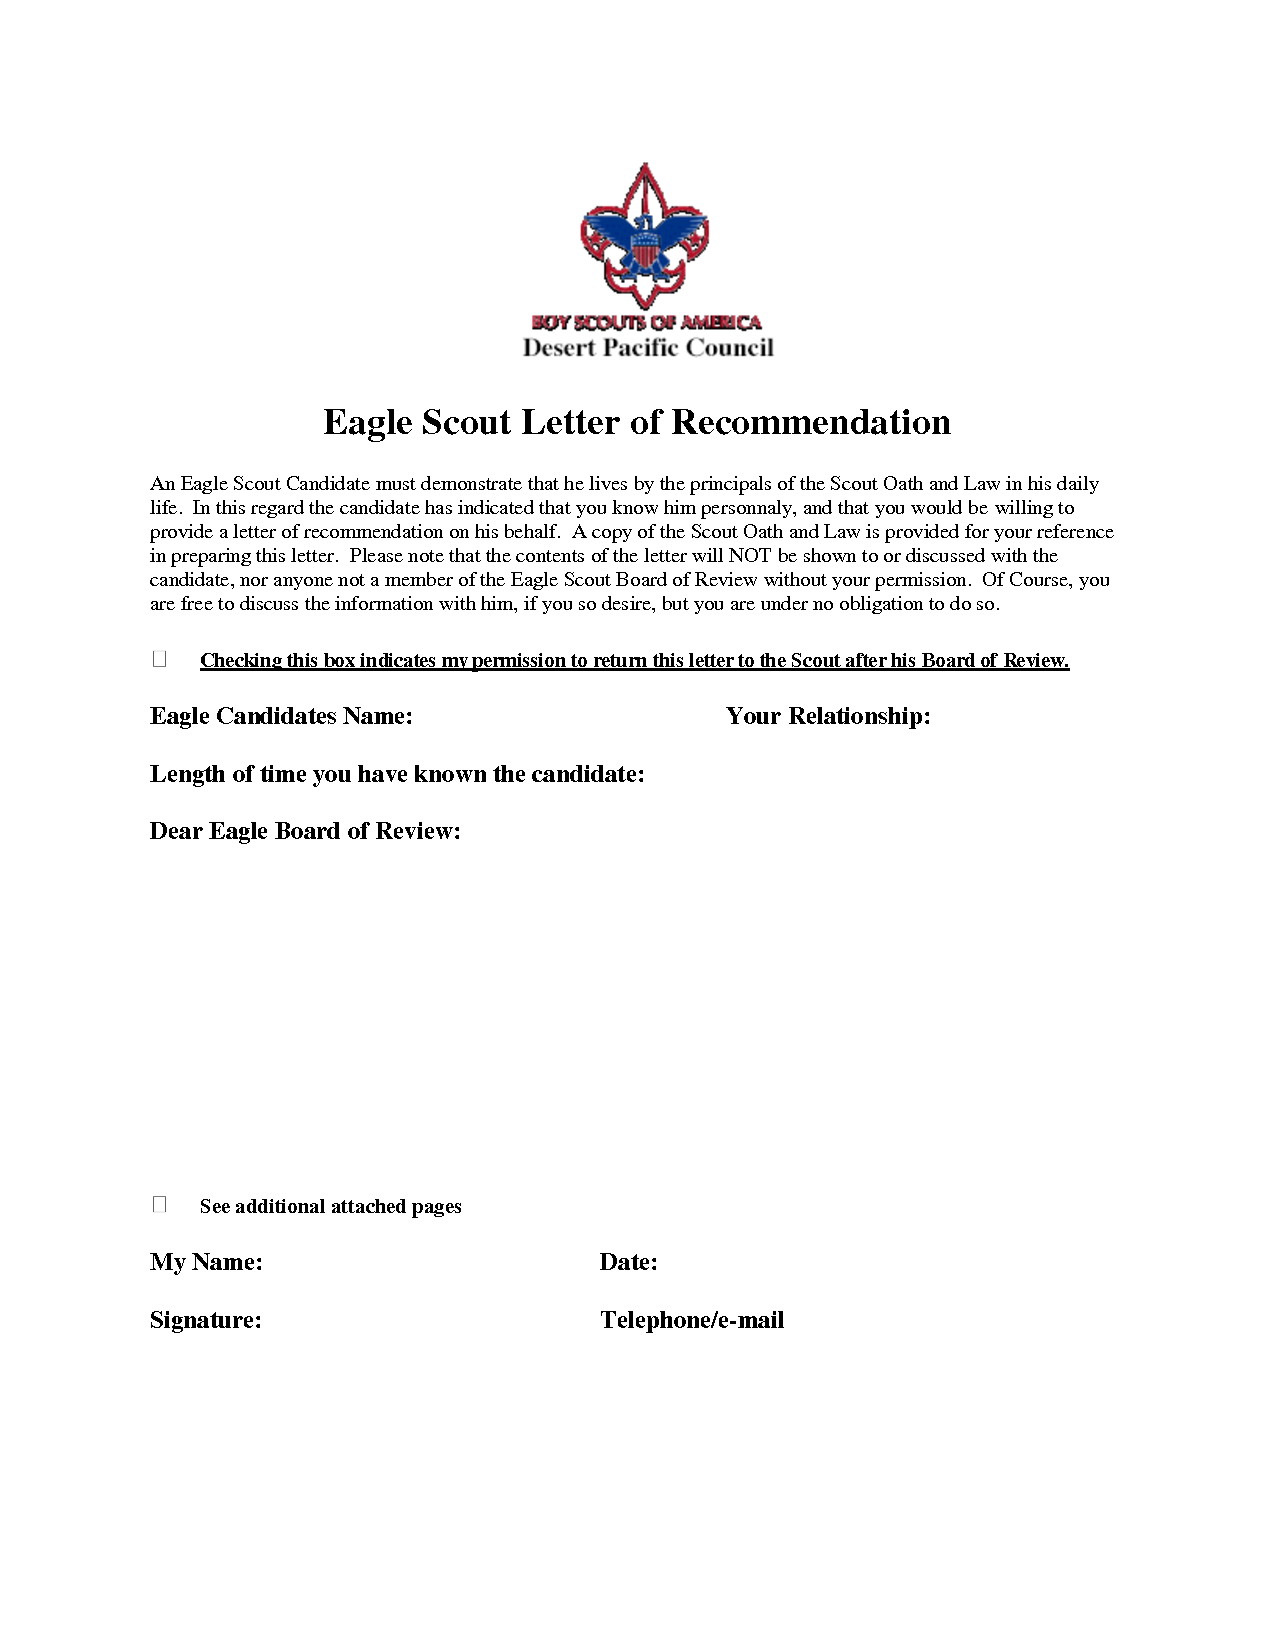 Eagle Scout Recommendation Letter Samples  EczaSolinfCo